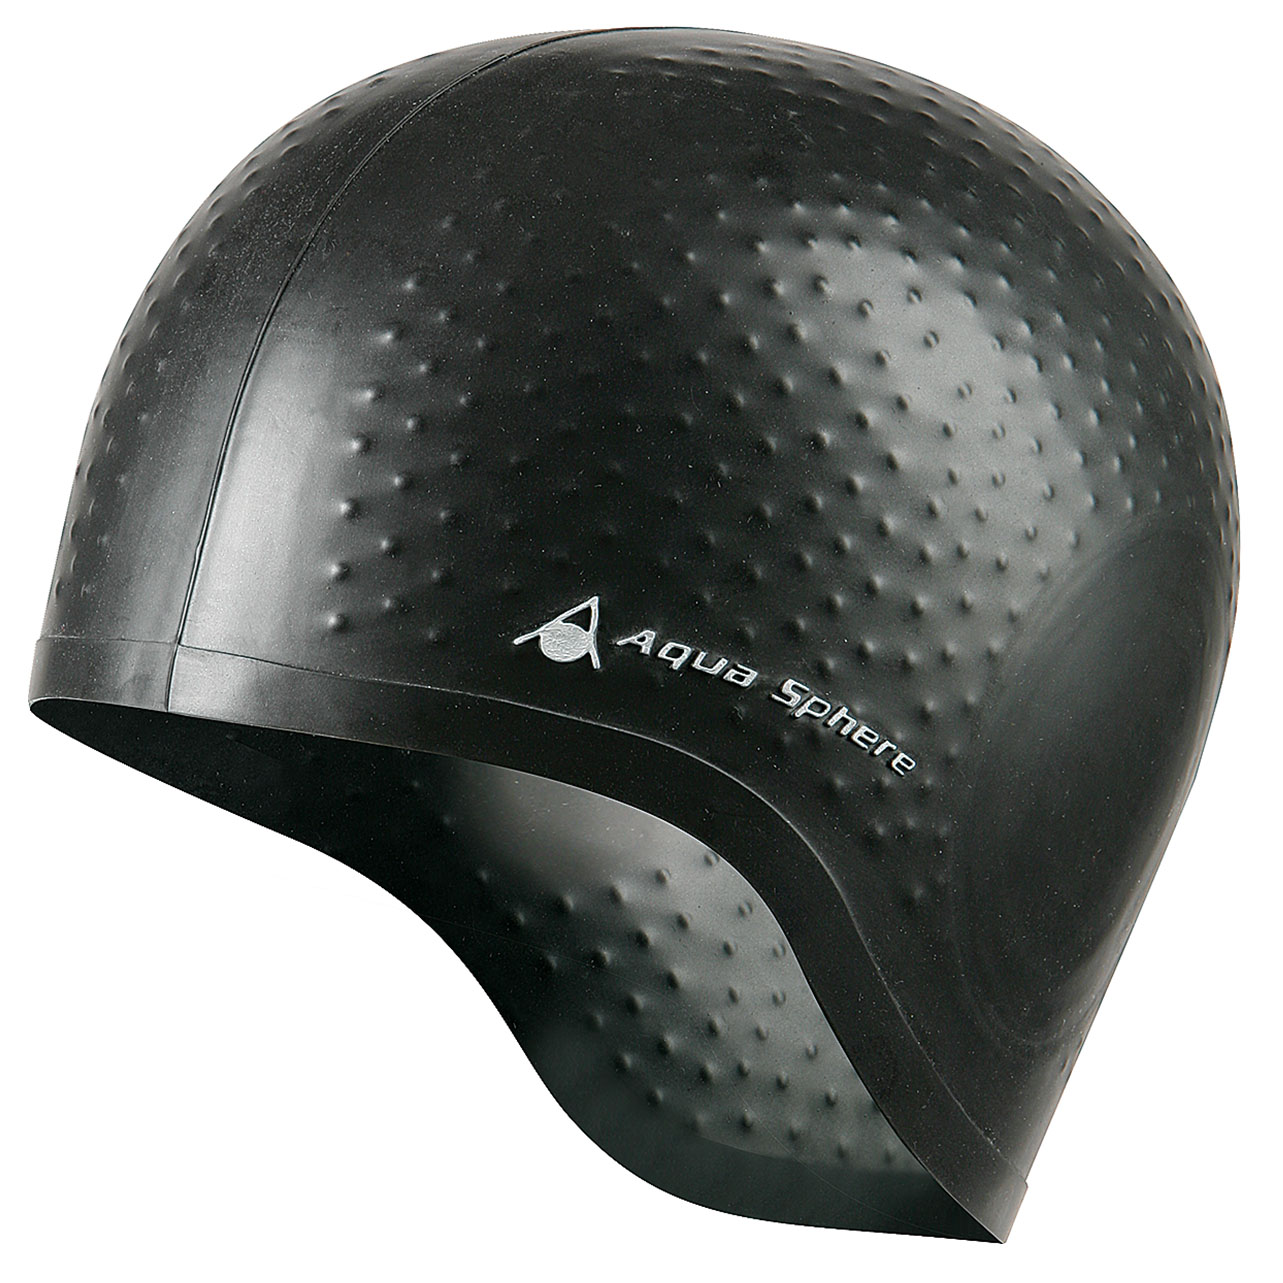 Aqua Sphere Aqua Glide Swimming Cap  Black